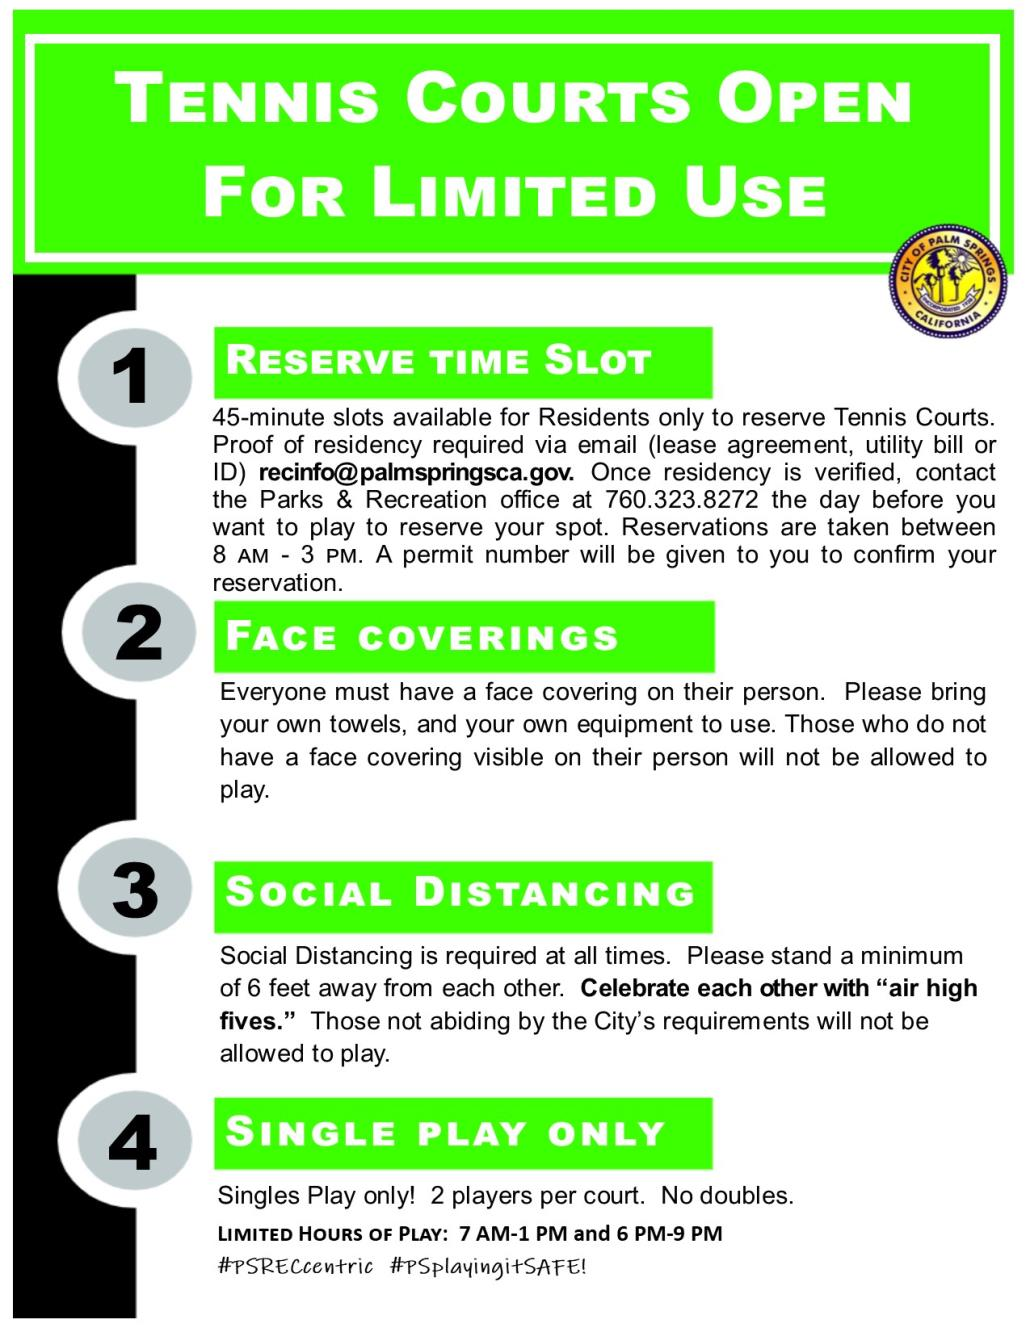 Tennis guidelines